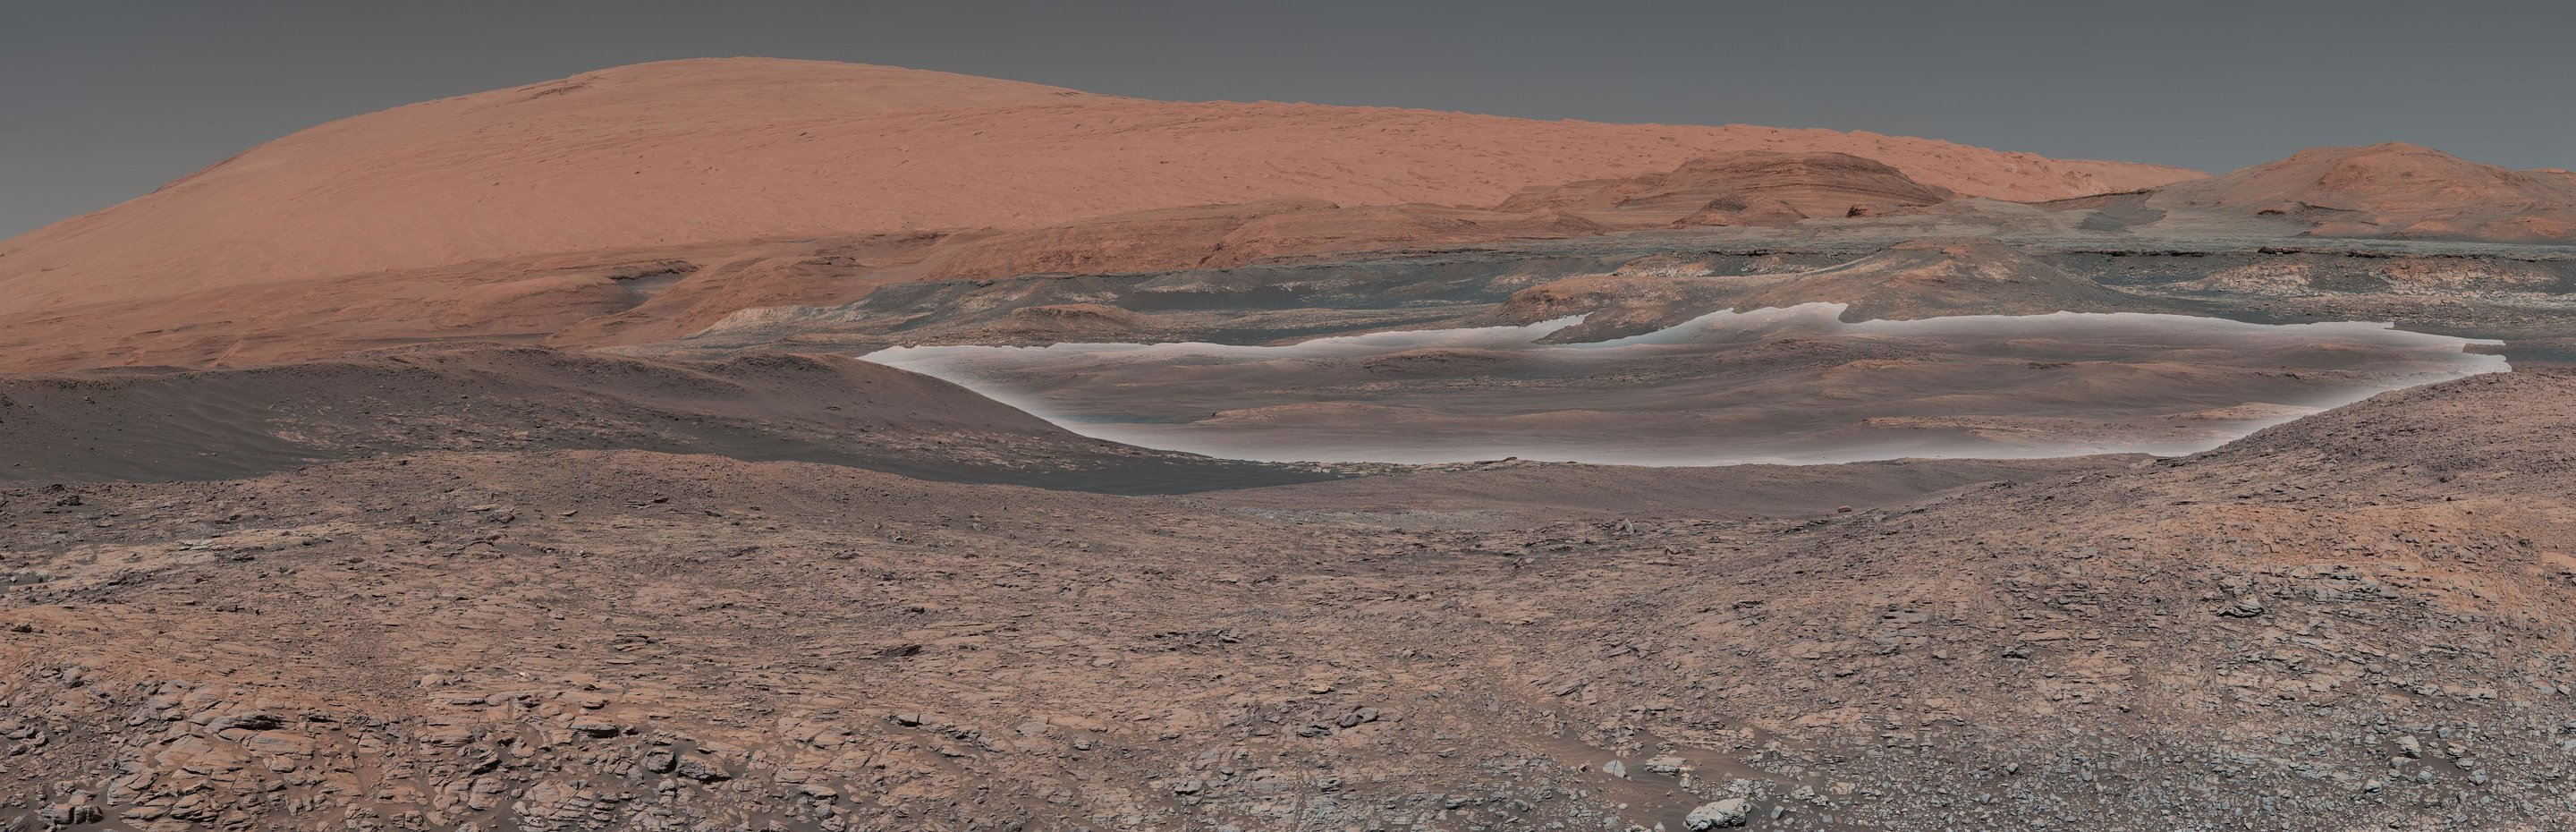 mars rover pictures 2018 insight - photo #7